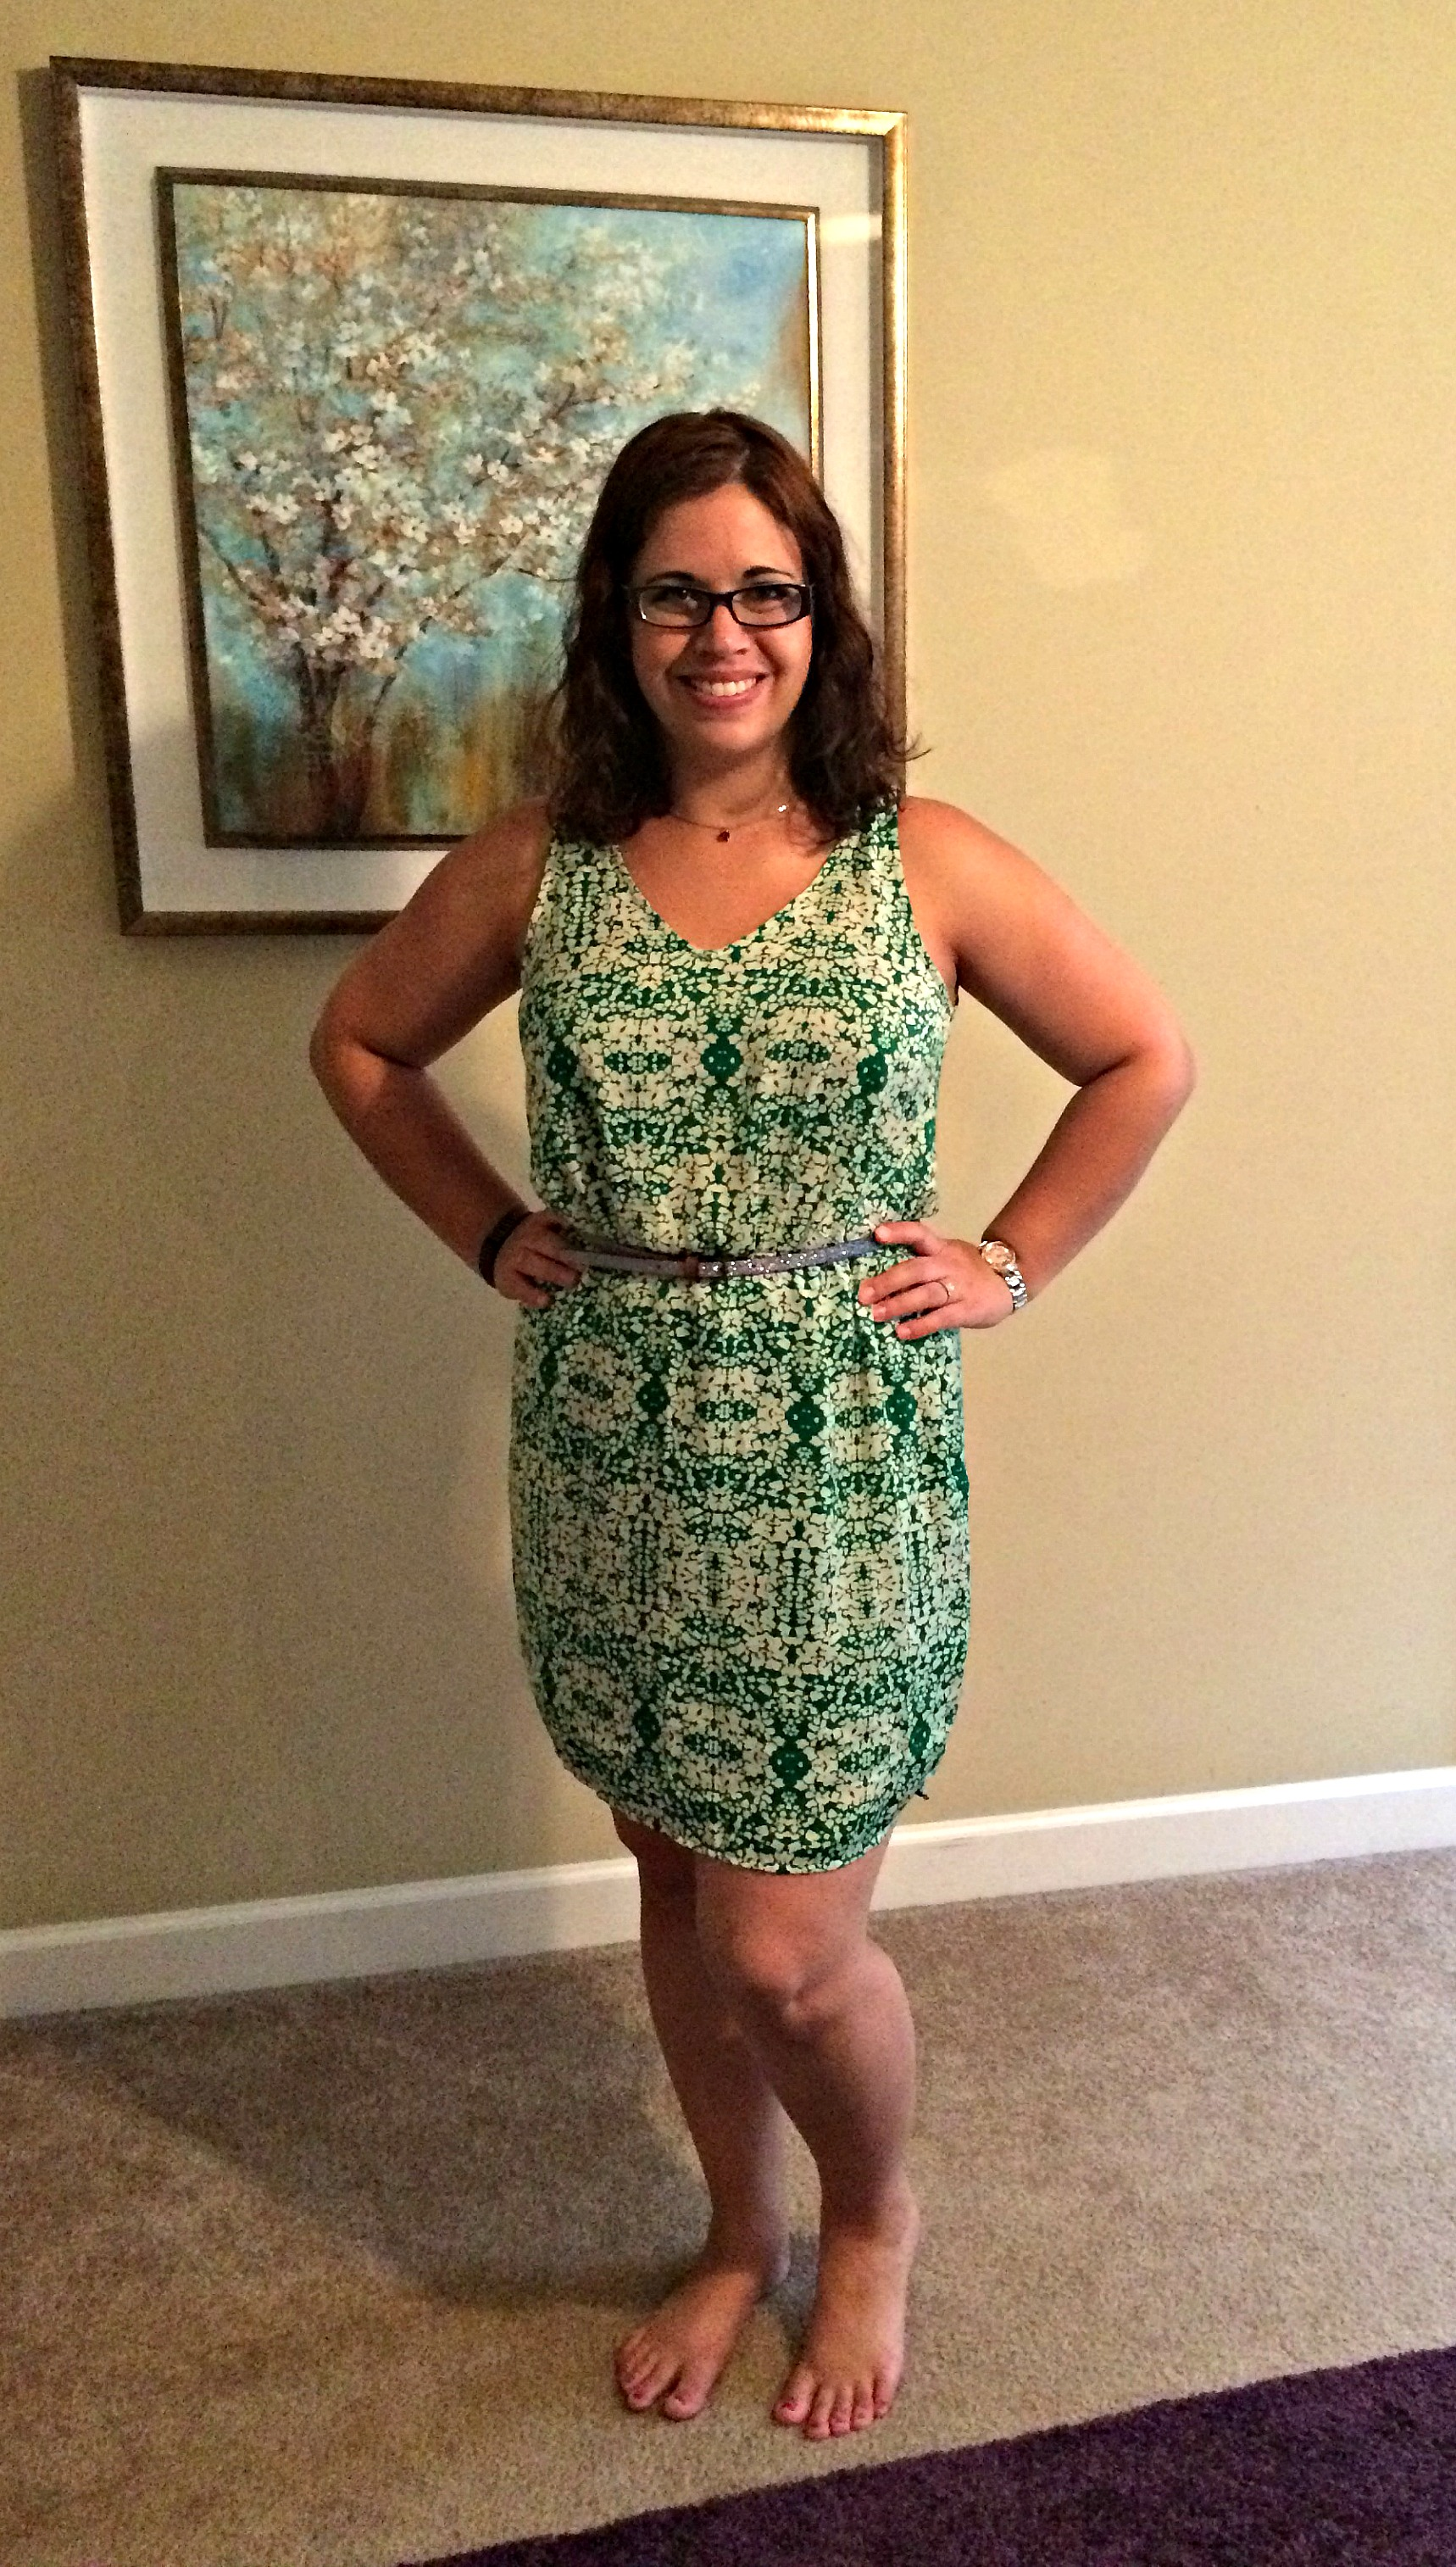 I loved this dress!! Such a fun color and print! Also a keeper!